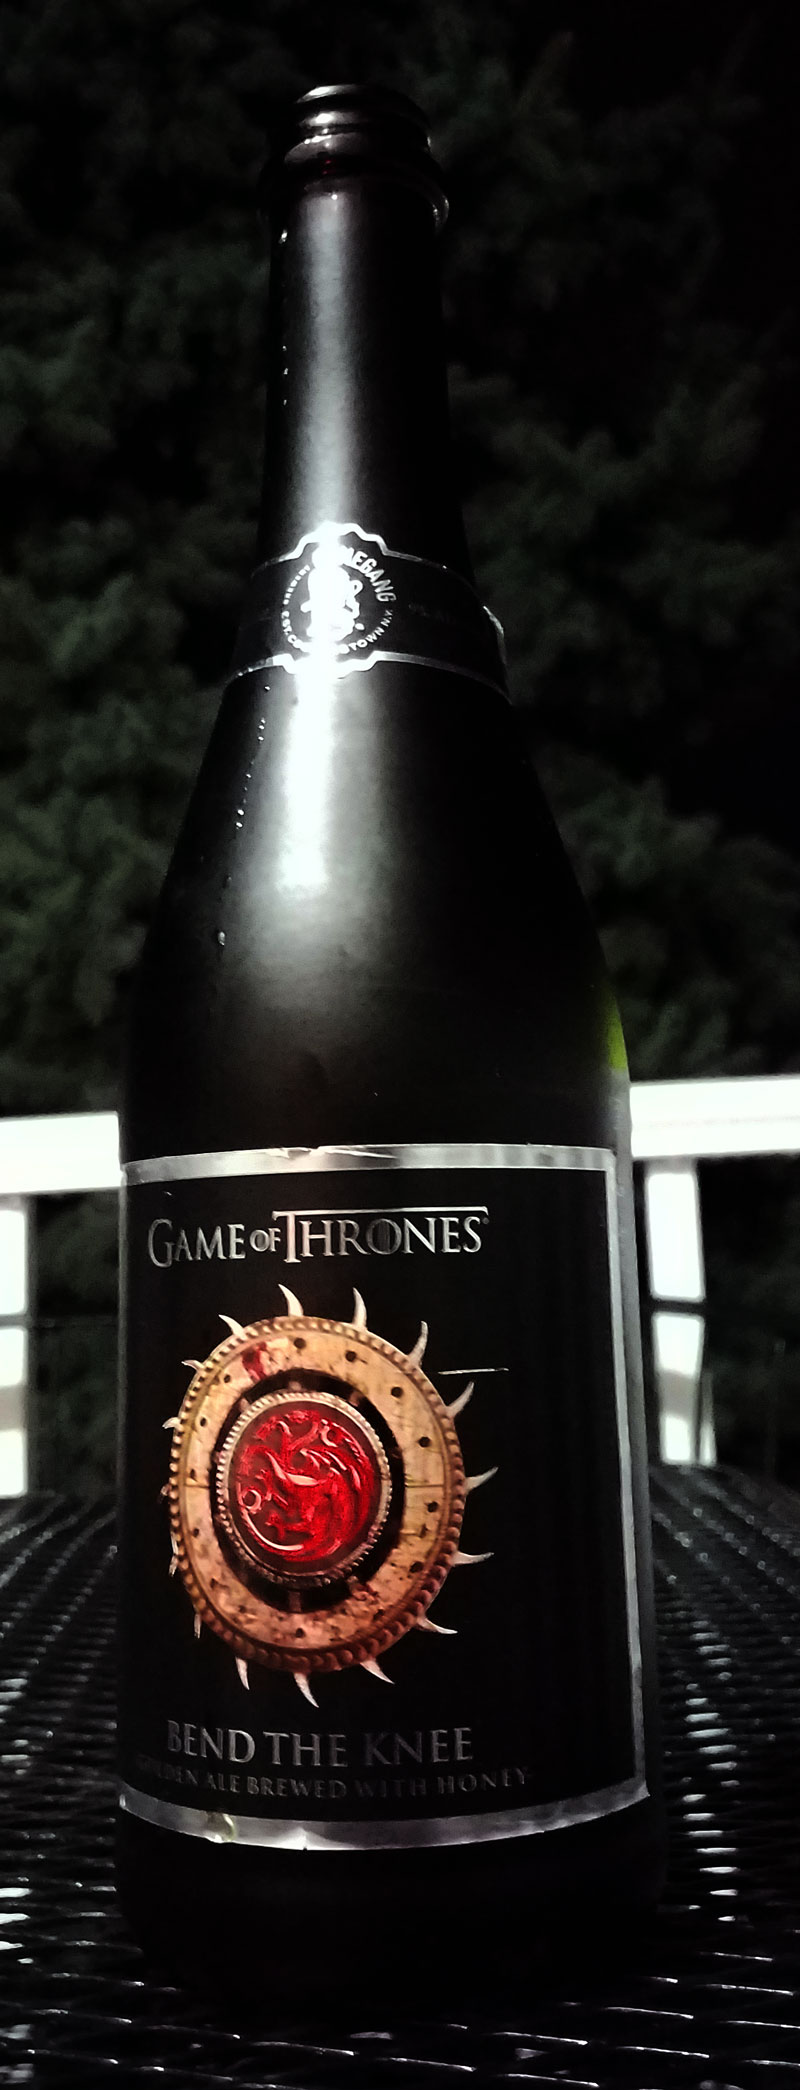 I was especially excited to try out this new brew, which I had planned on holding for the July 16th premiere of the new season of Game of Thrones. Click through for this craft beer review.